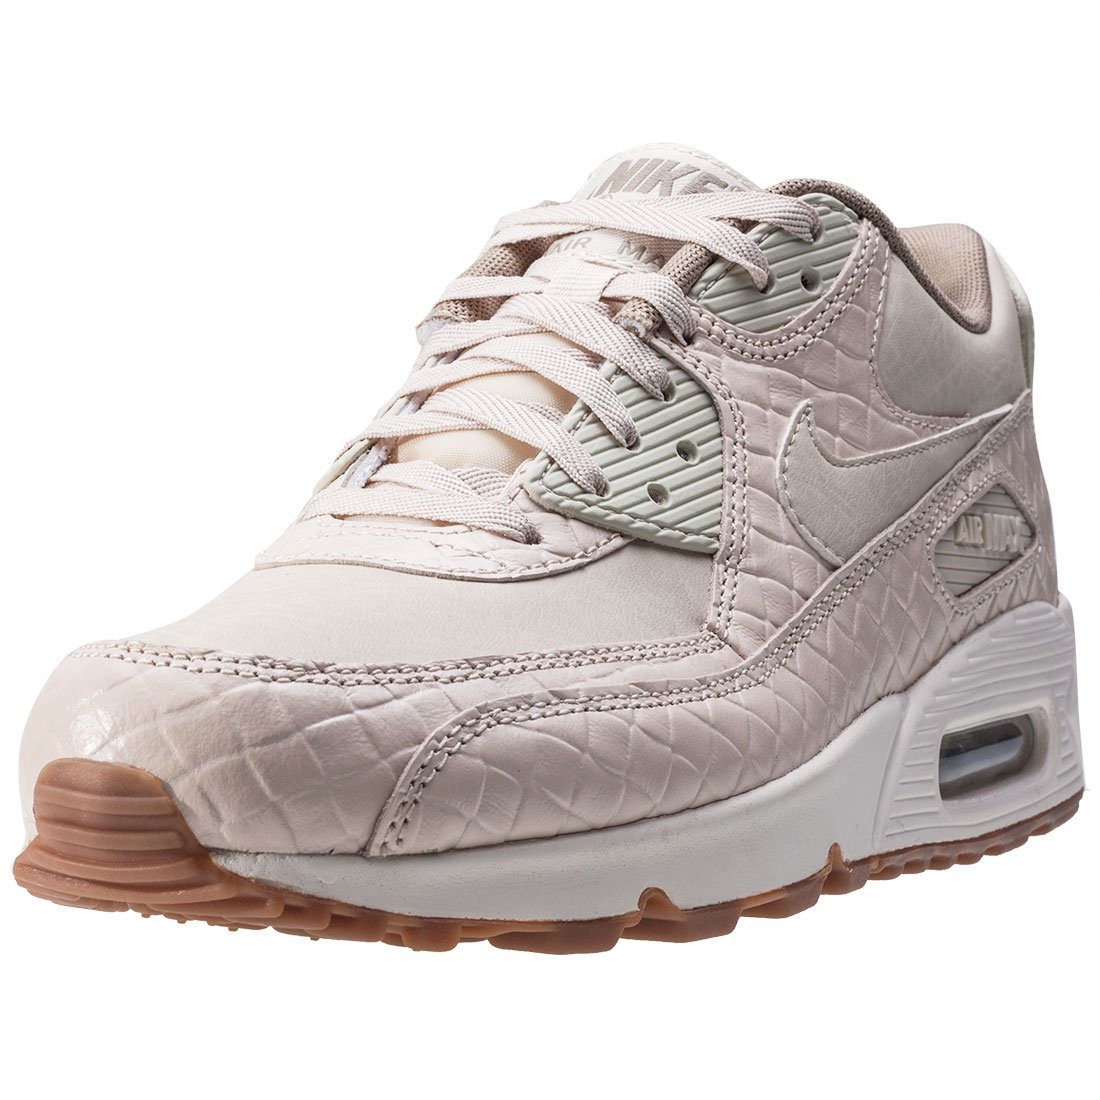 pretty nice 401dc a3ab5 NIKE Wmns Air Max 90 Prem Womens Running Shoes: Amazon.co.uk: Shoes & Bags